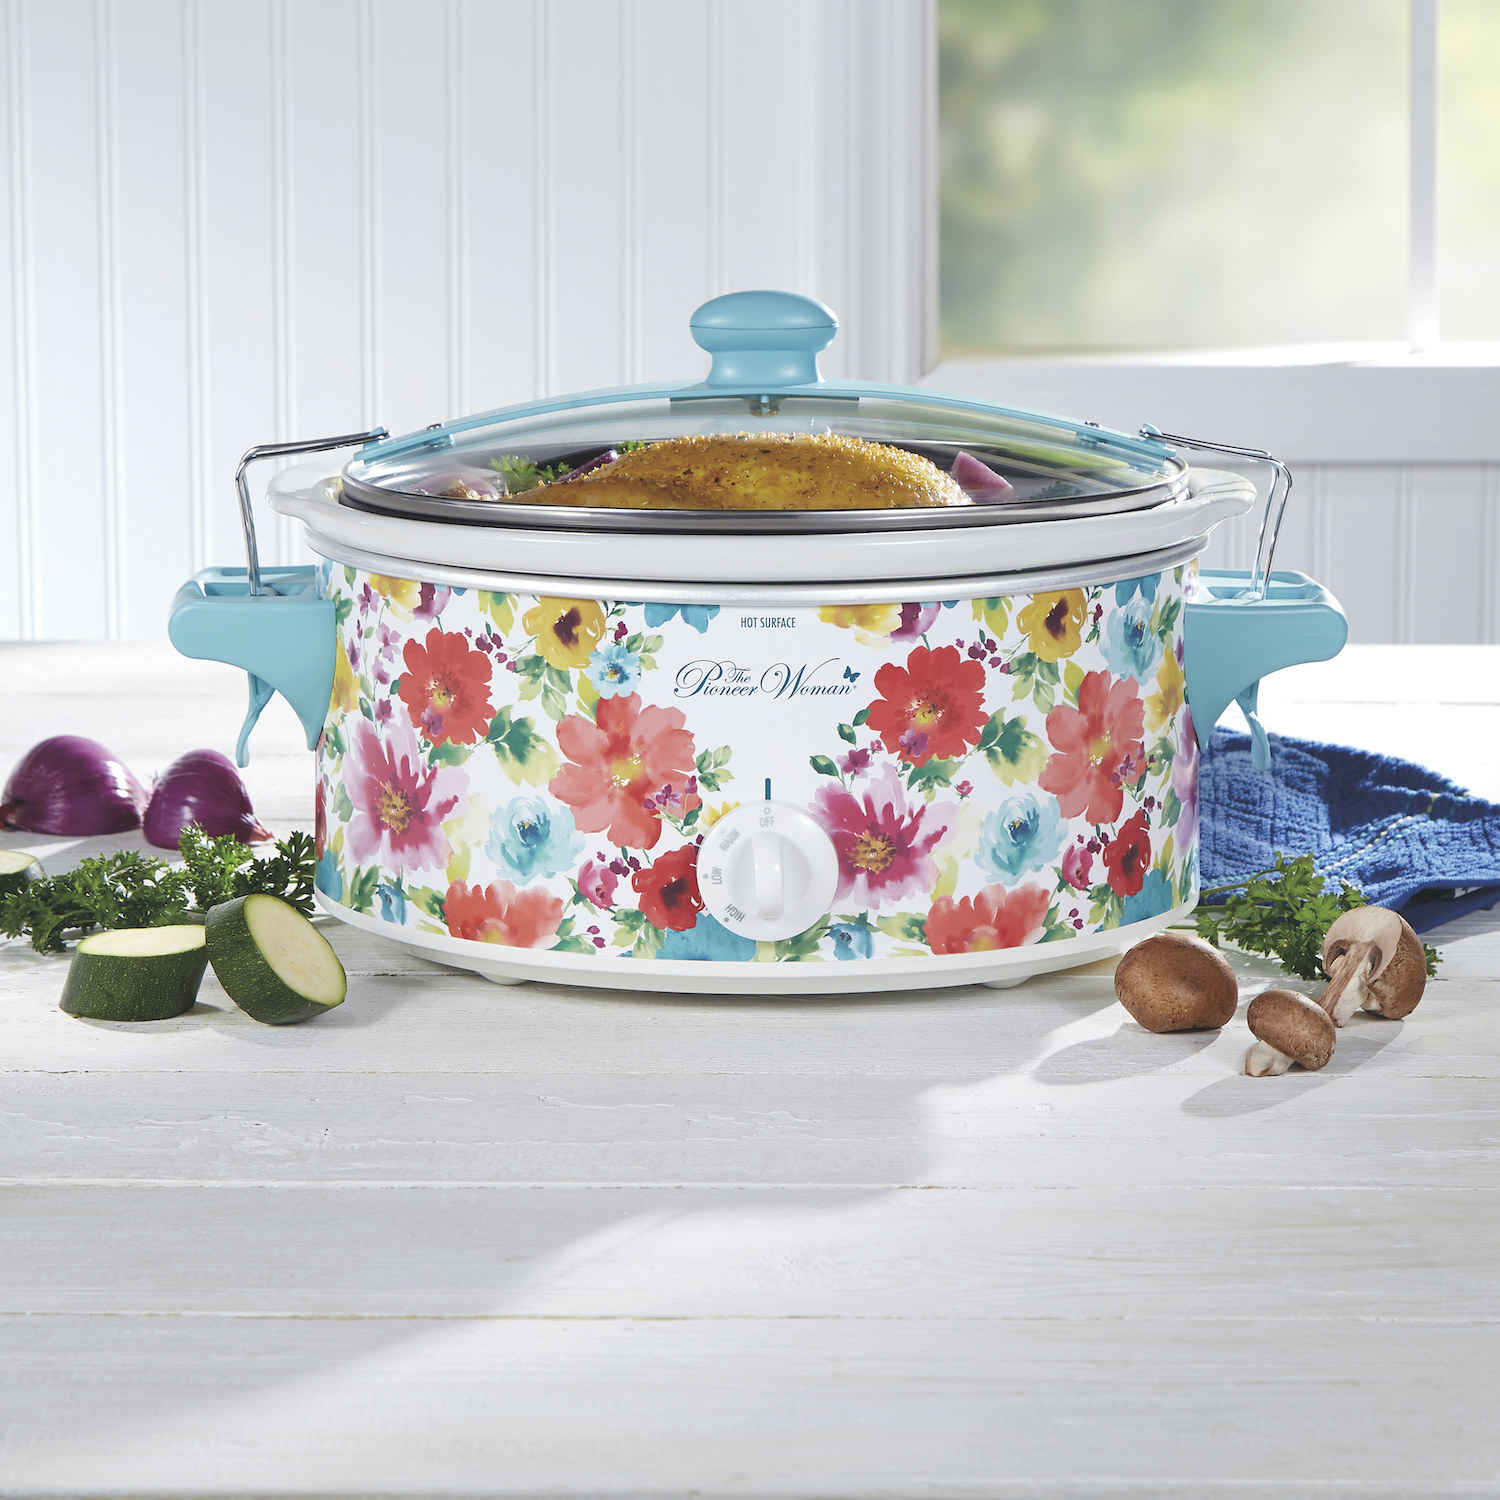 The floral slow cooker on a counter